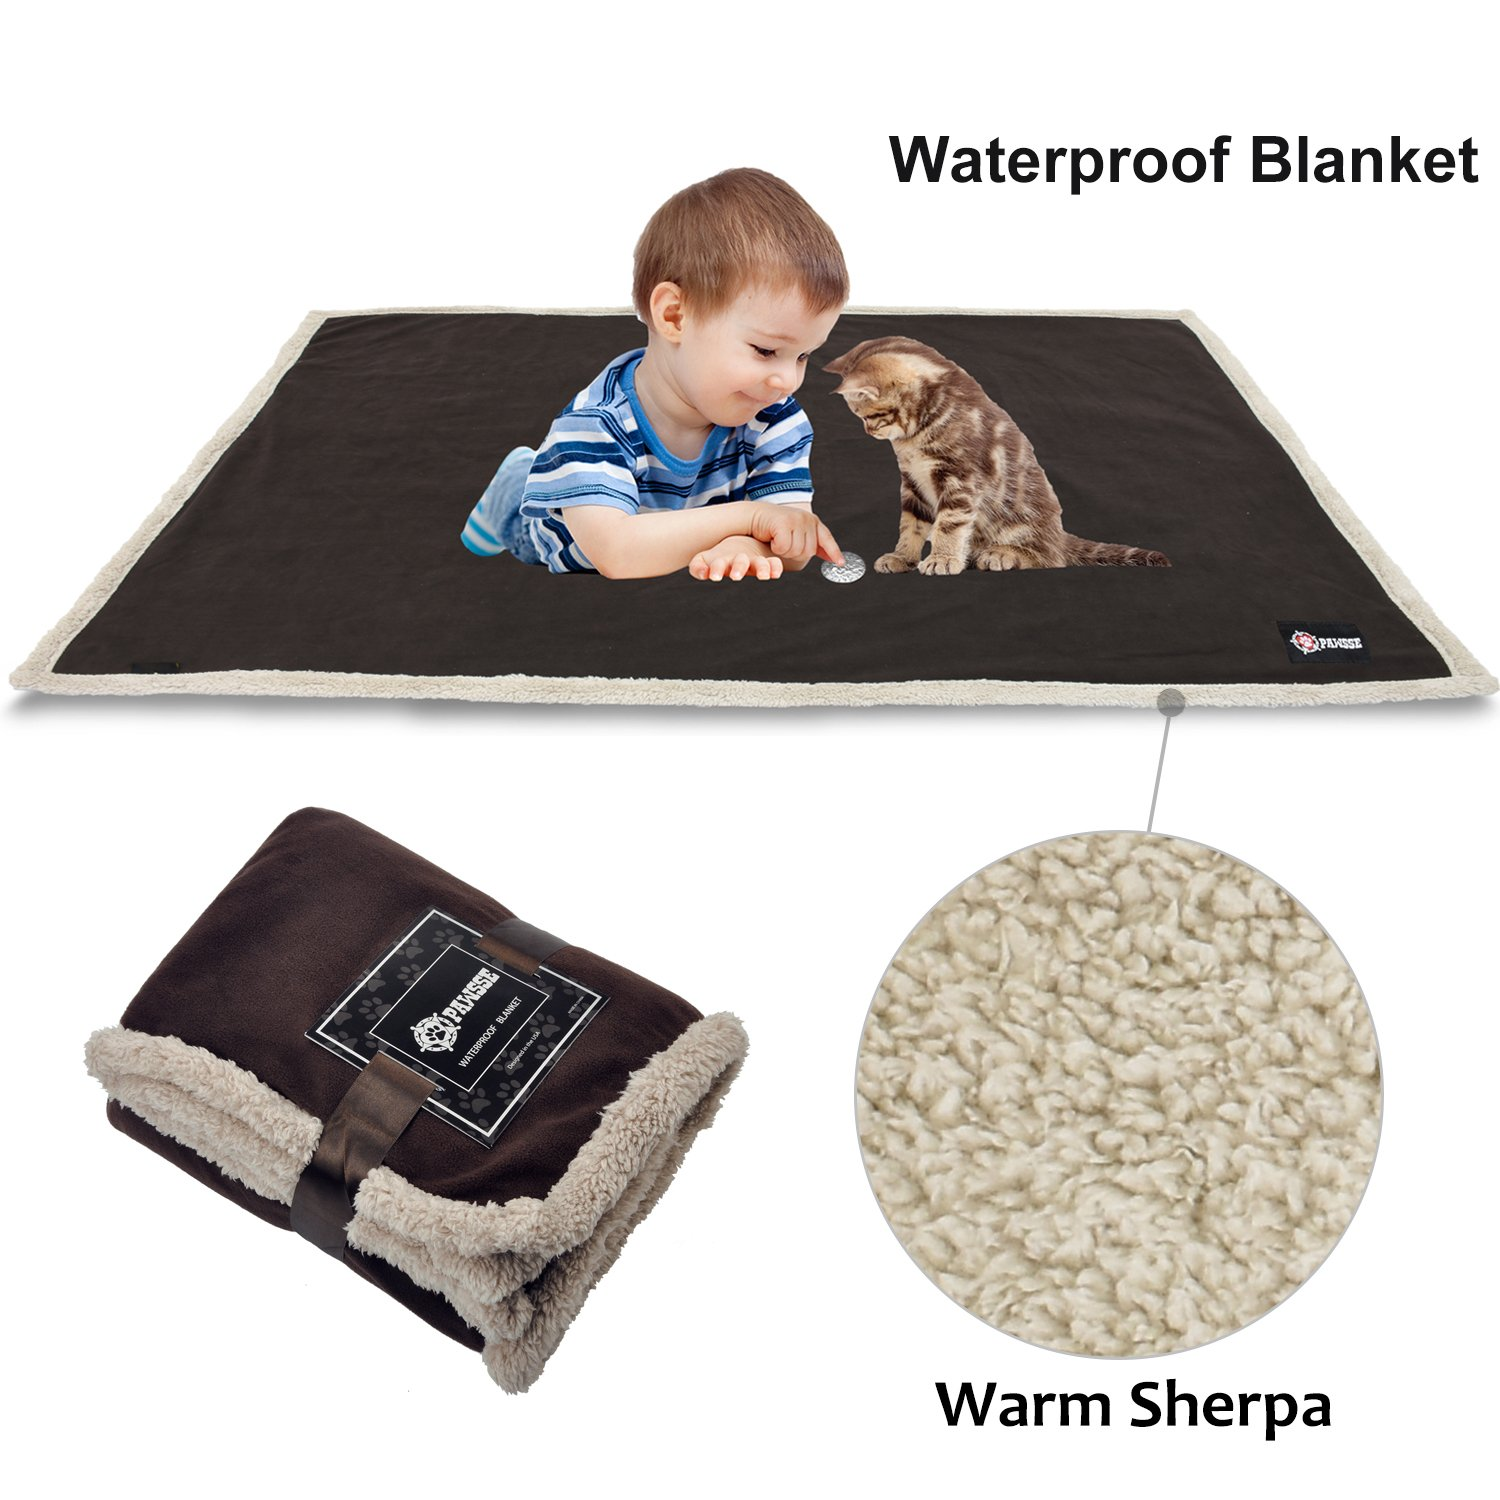 Waterproof Dog Blanket,Premium Pet Puppy Cat Soft Fleece Sherpa Throws Blanket Cushion Mat for Car Seat Furniture Protector Cover Small 50'' x 30'' by Pawsse Brown by Pawsse (Image #1)